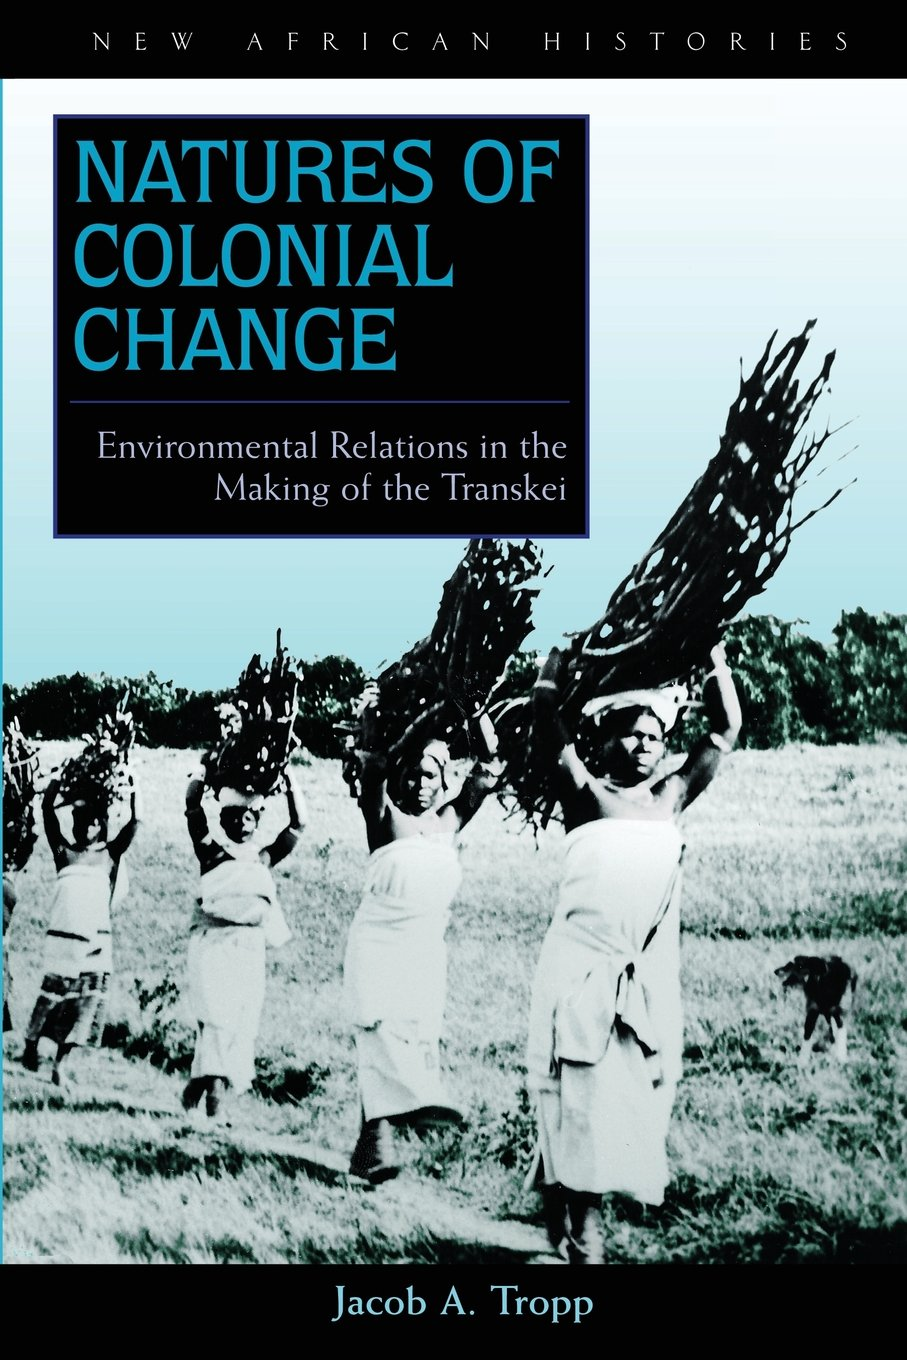 Download Natures of Colonial Change: Environmental Relations in the Making of the Transkei (New African Histories) PDF